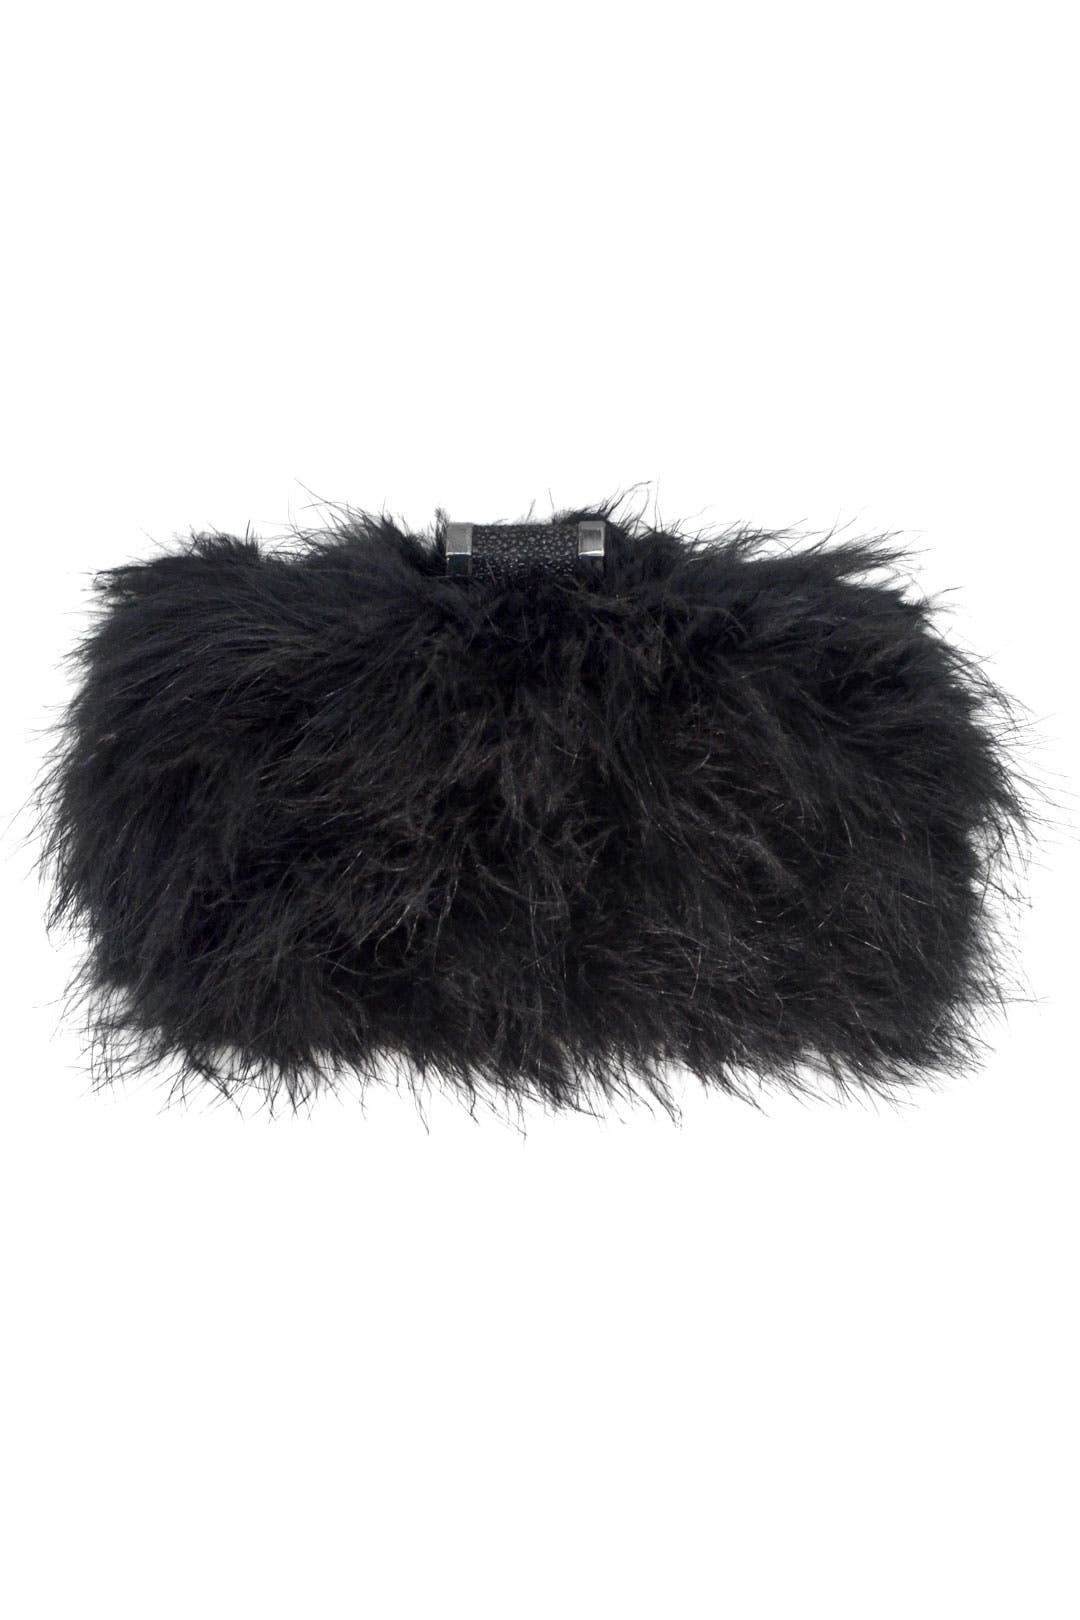 Debonair Darling Clutch by Halston Heritage Handbags